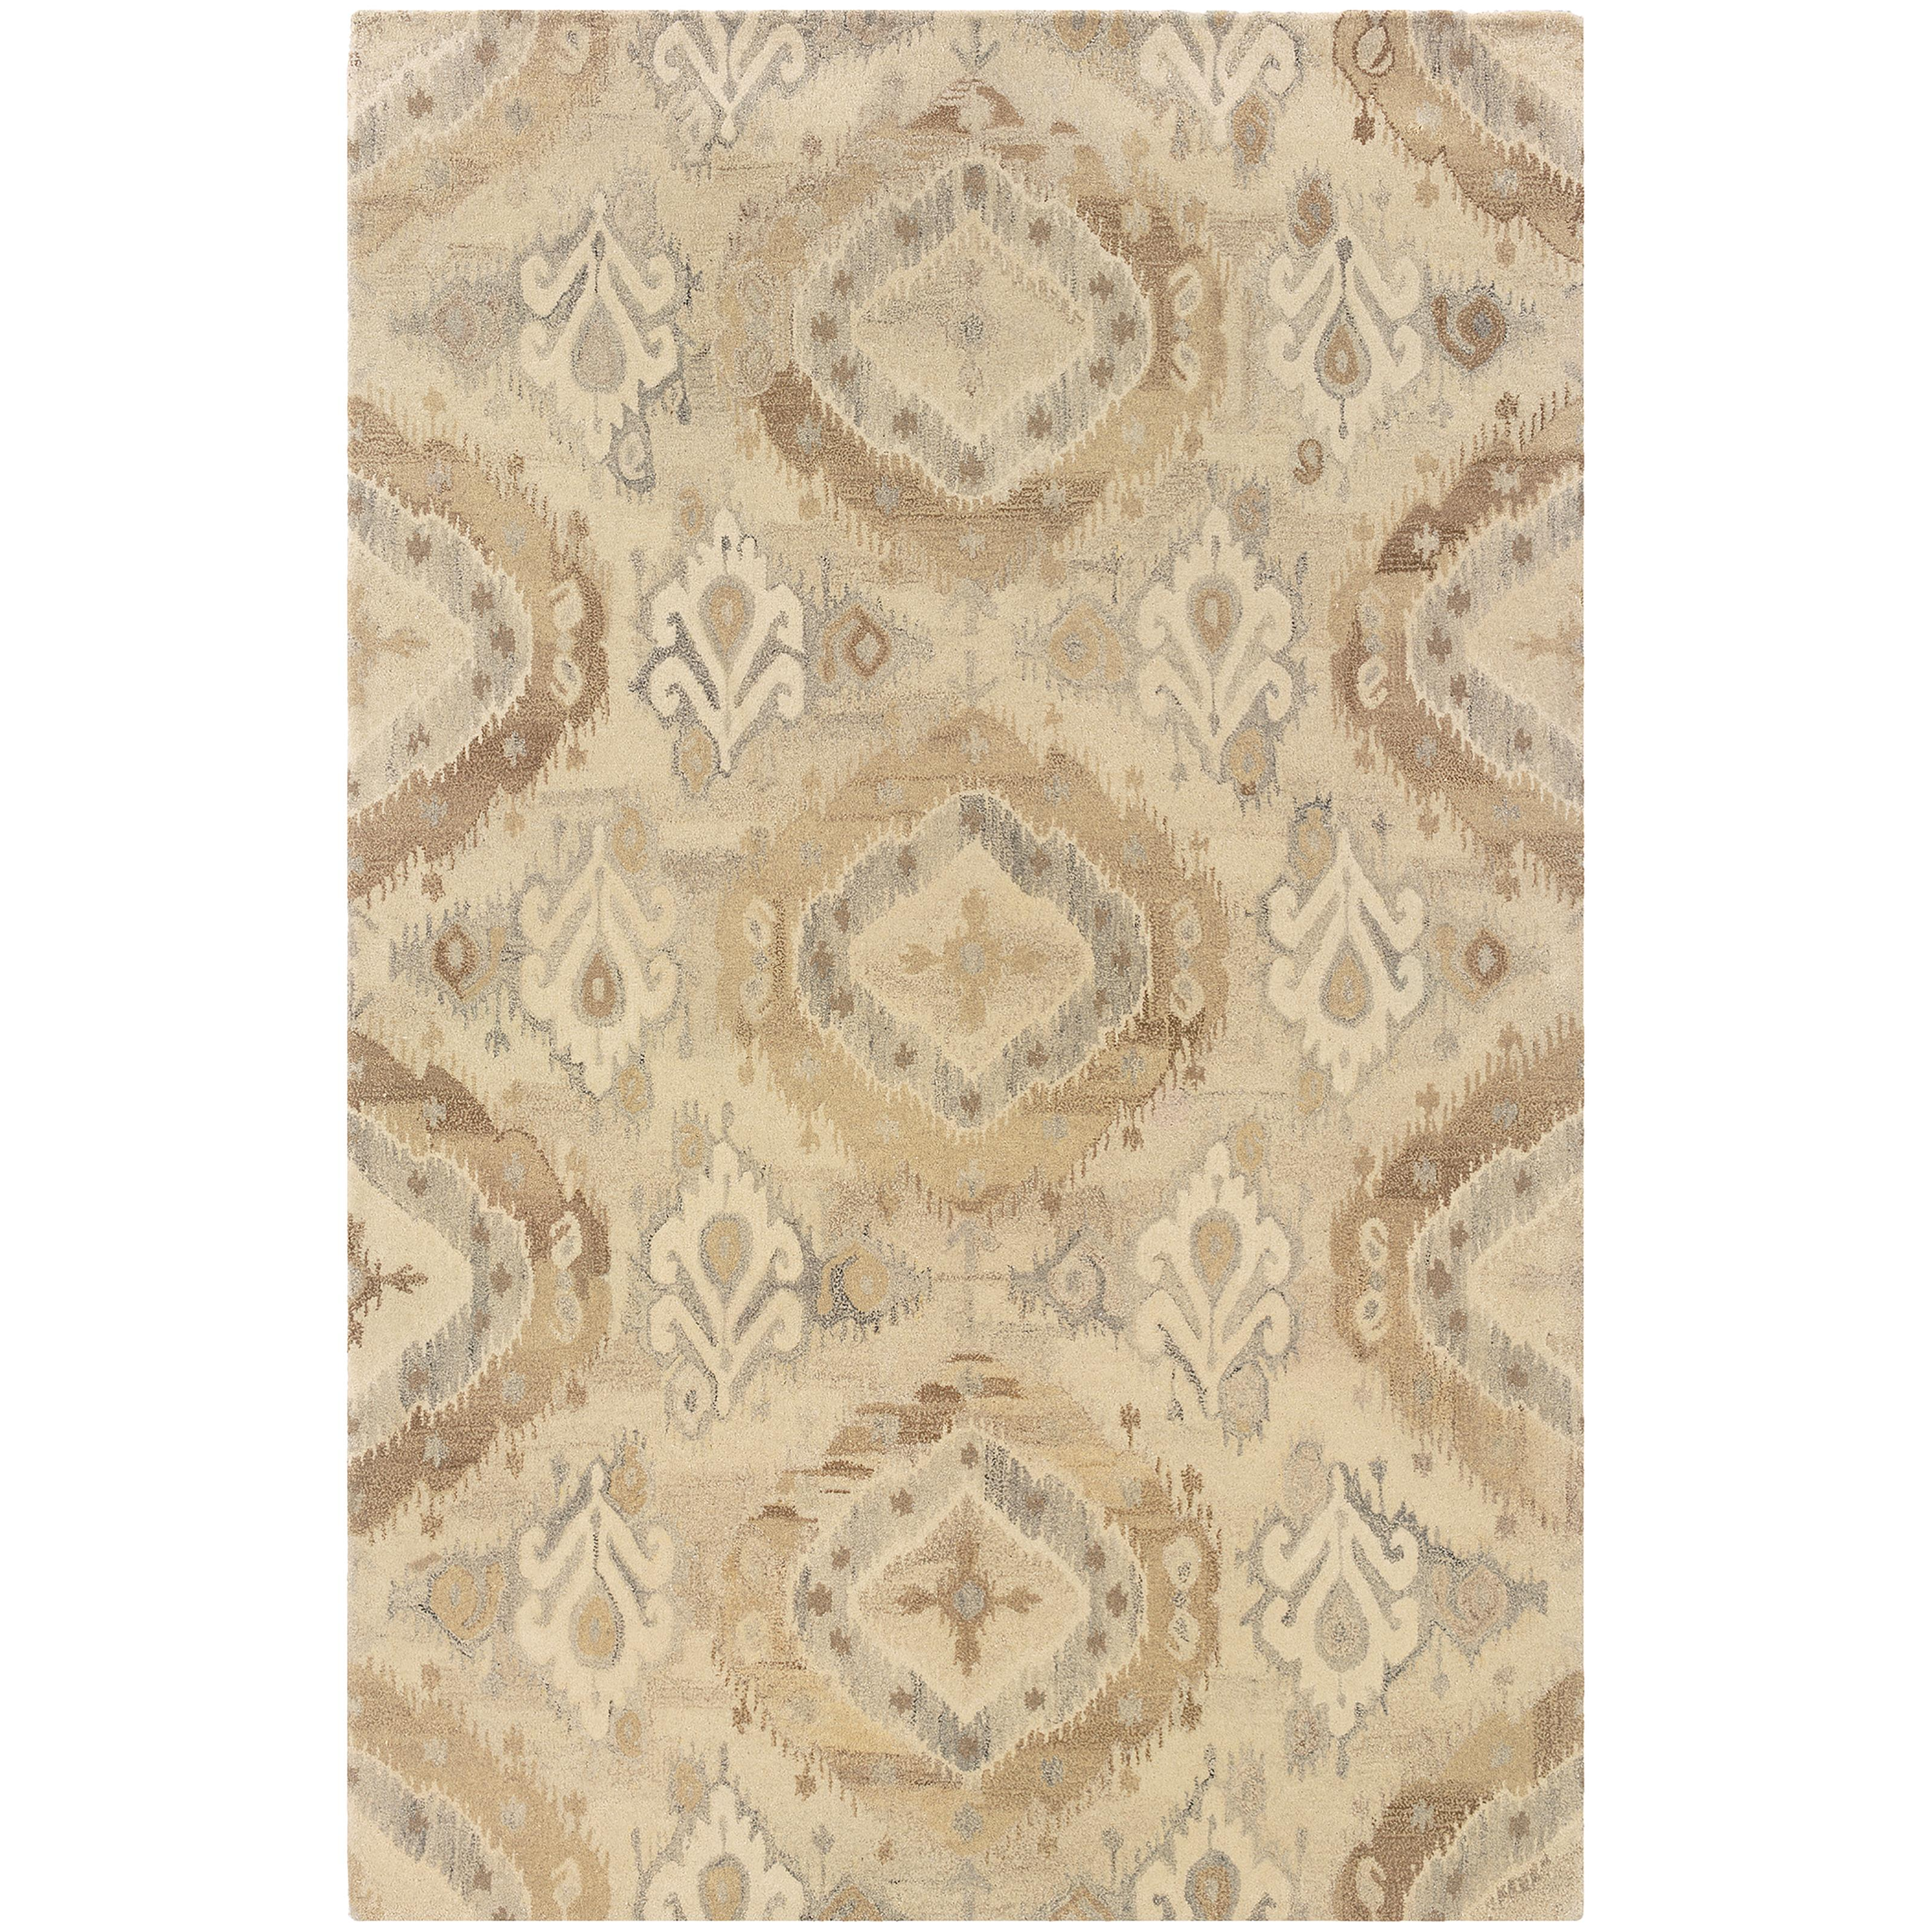 "Anastasia 8' 0"" X 10' 0"" Rug by Oriental Weavers at Novello Home Furnishings"